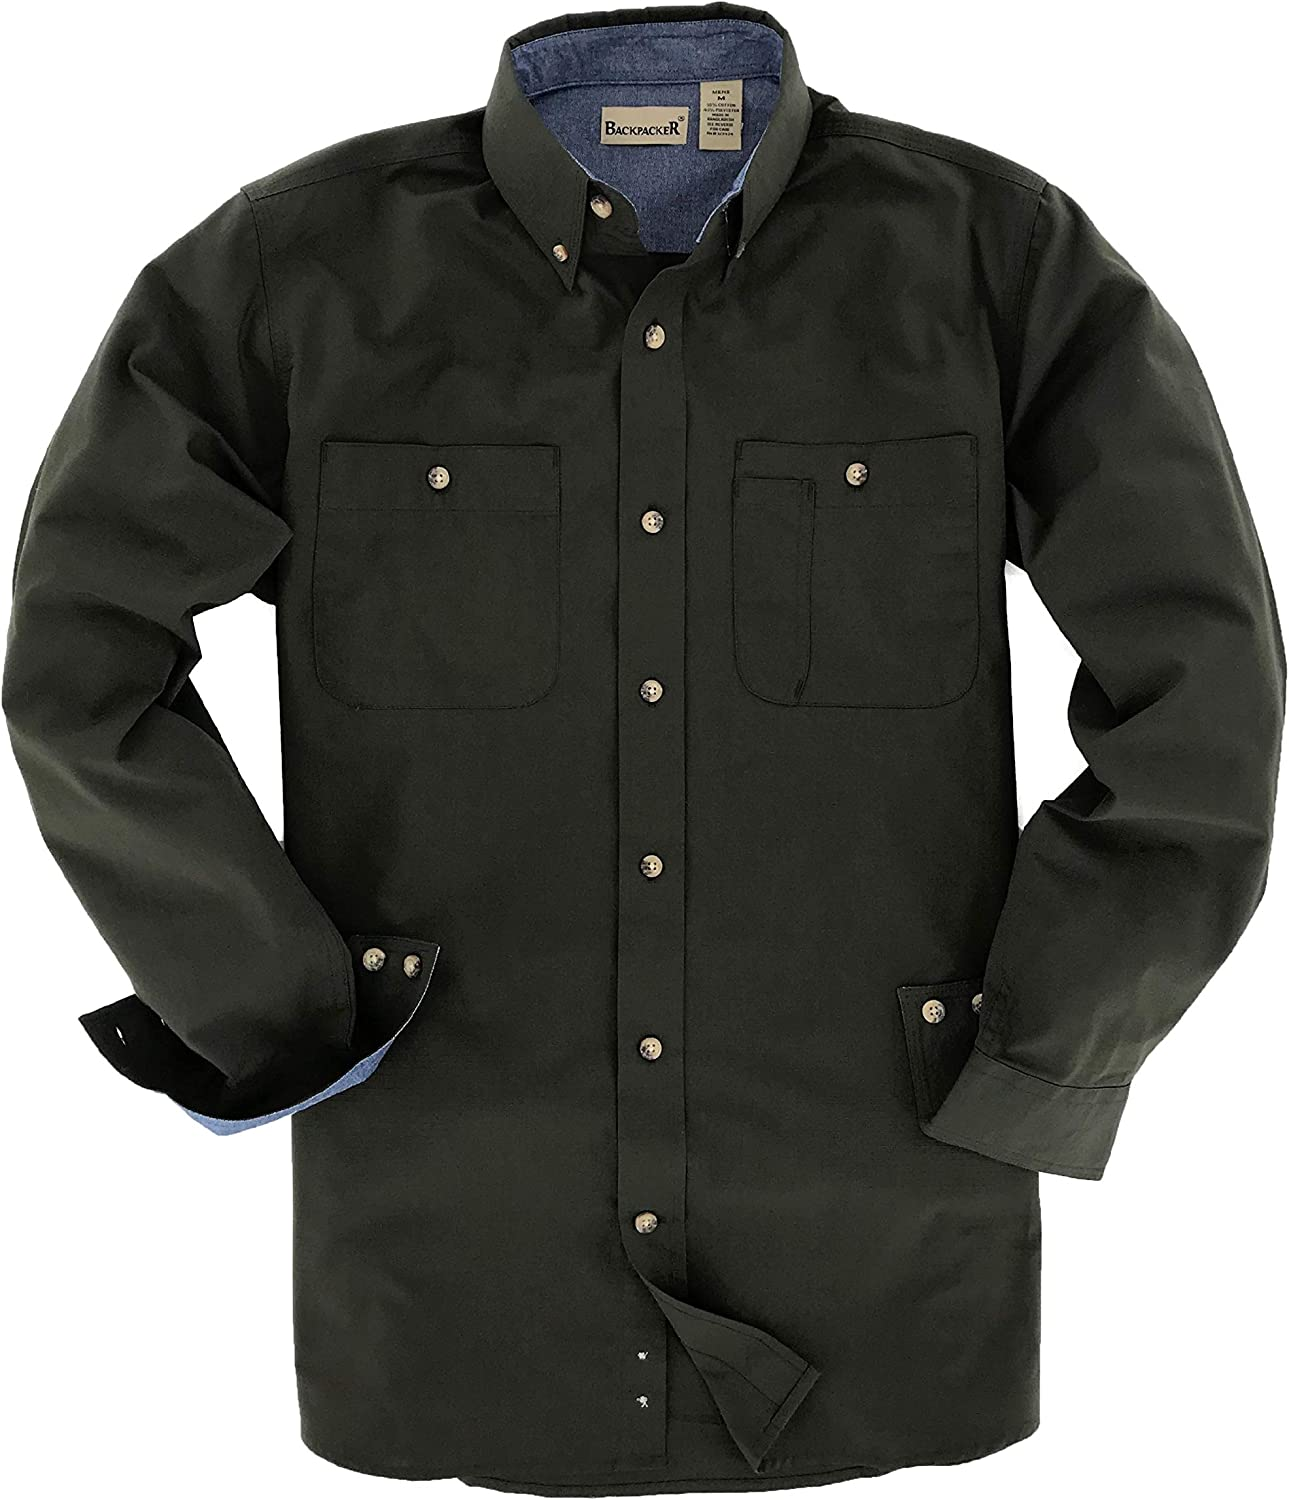 Backpacker Mens Rip Stop Woven